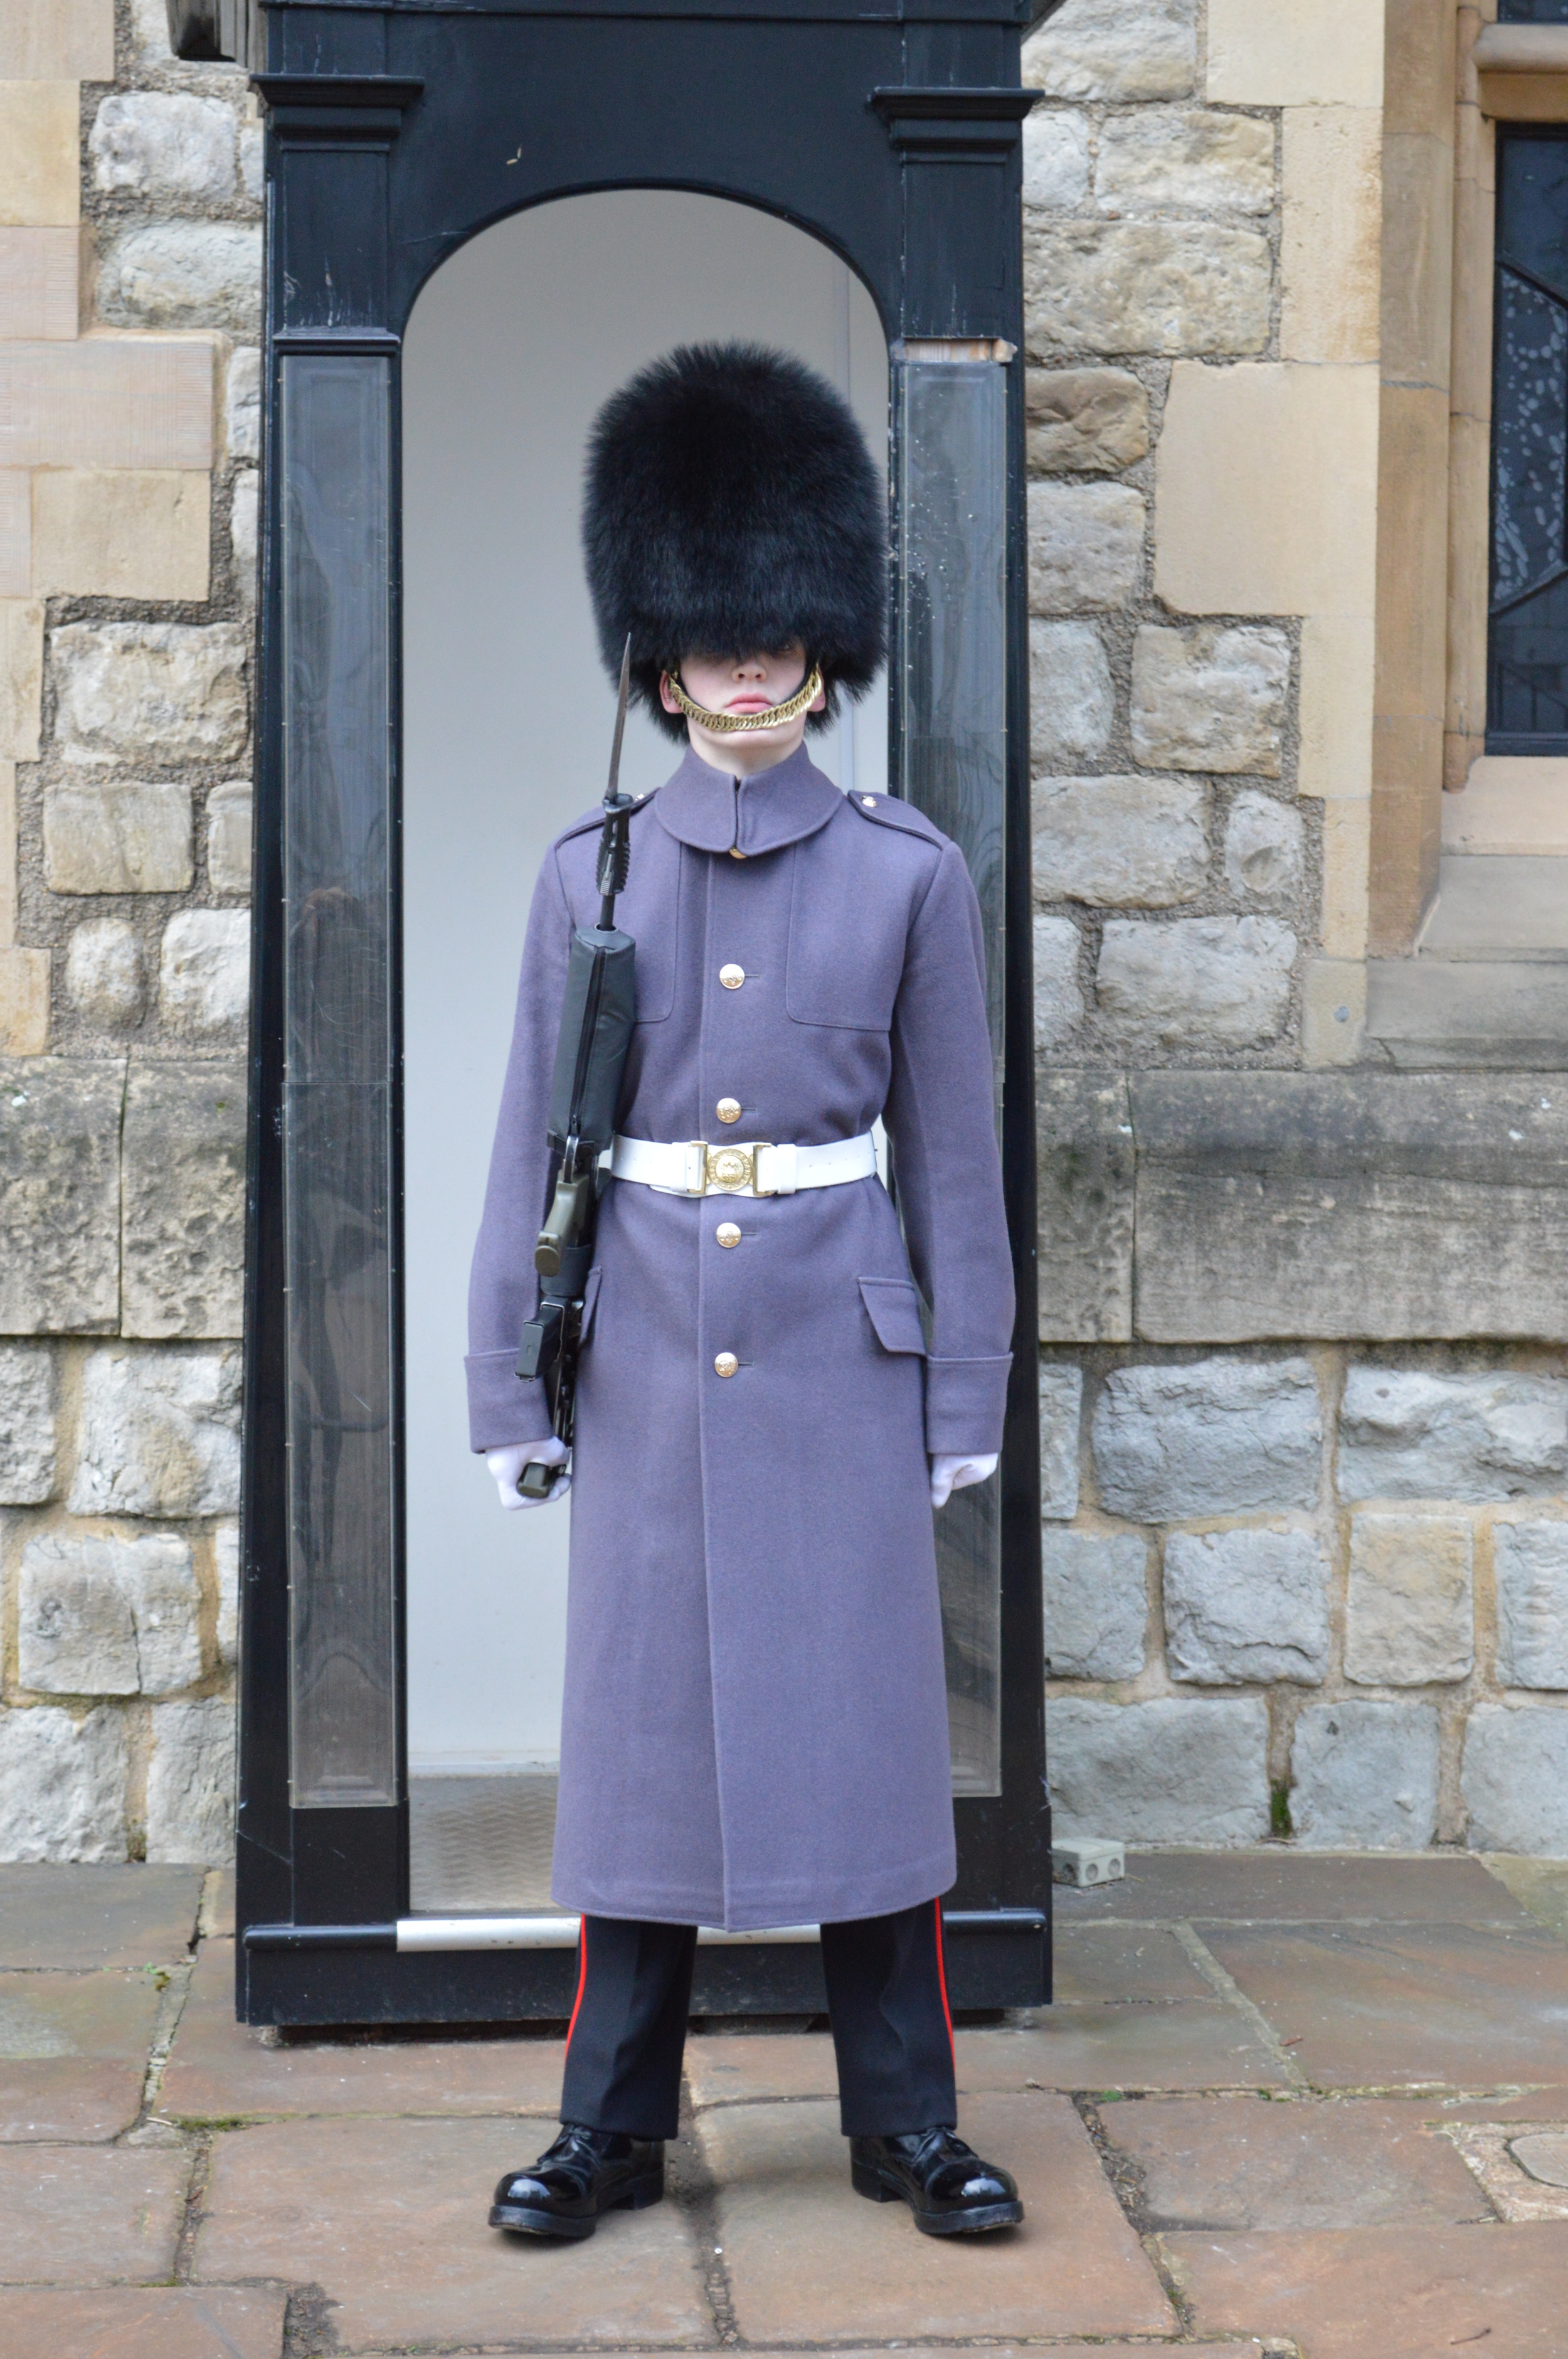 Towerof London - Guard